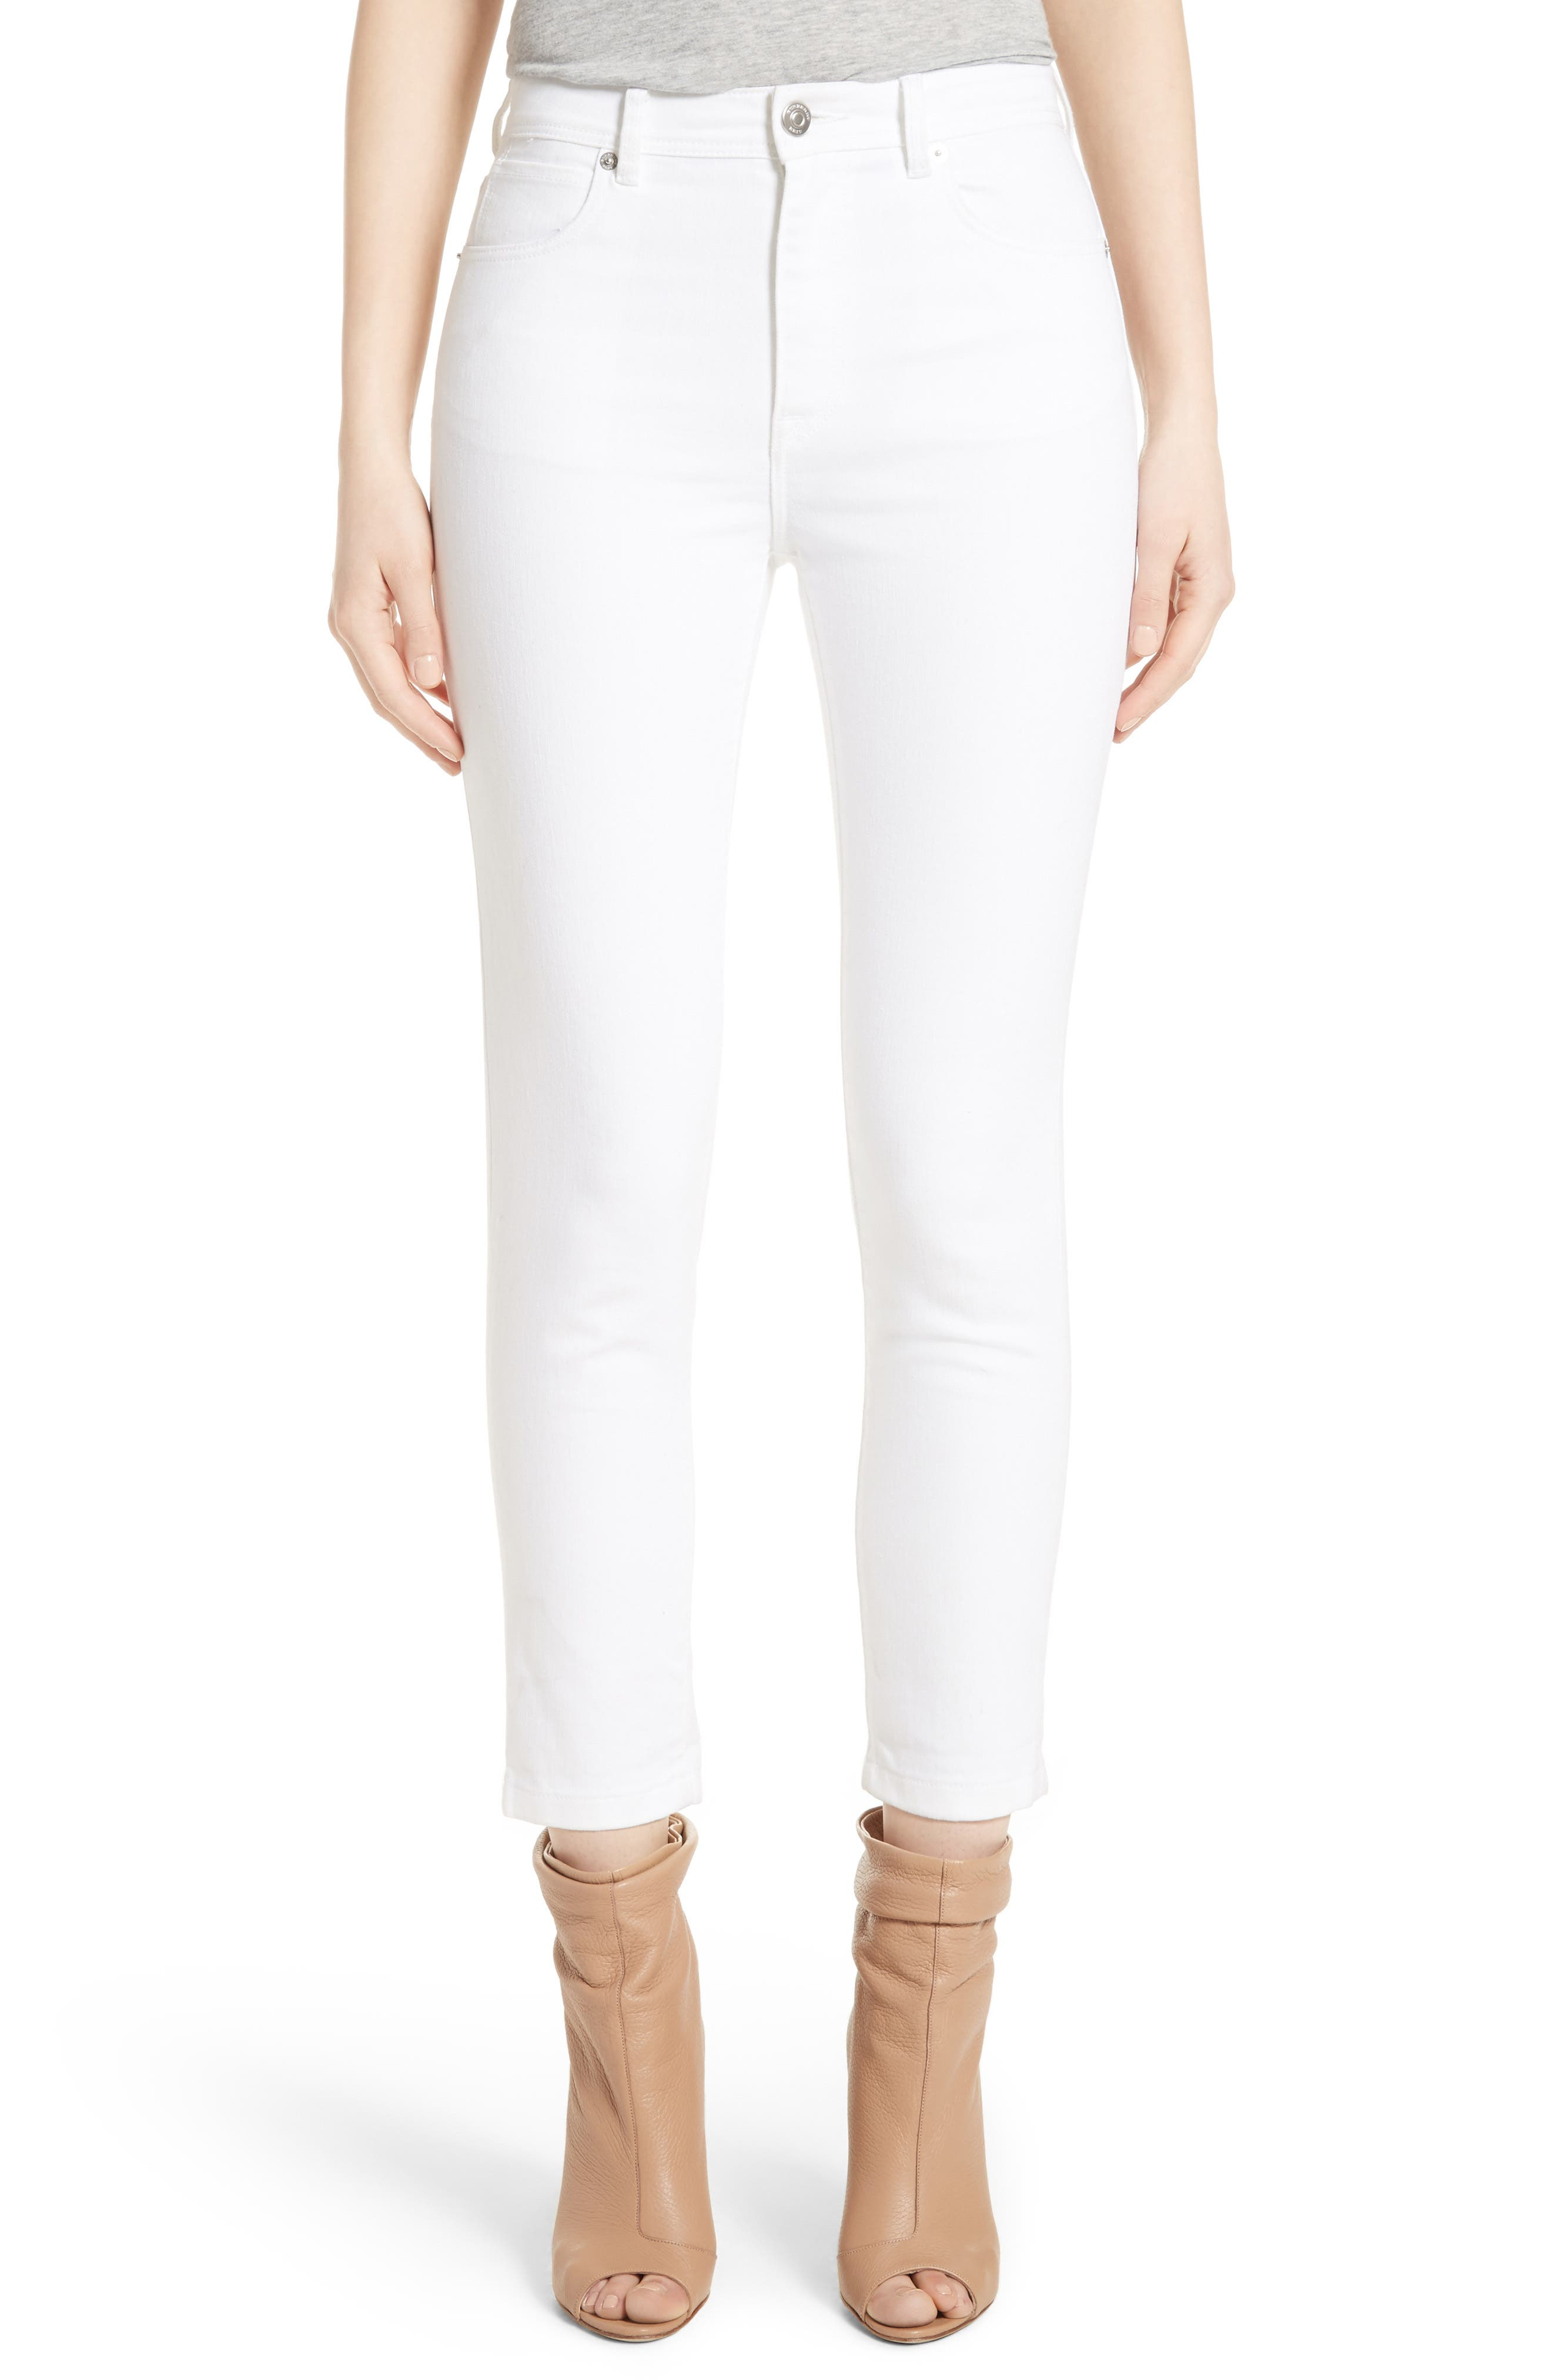 Burberry Stretch Crop Skinny Jeans